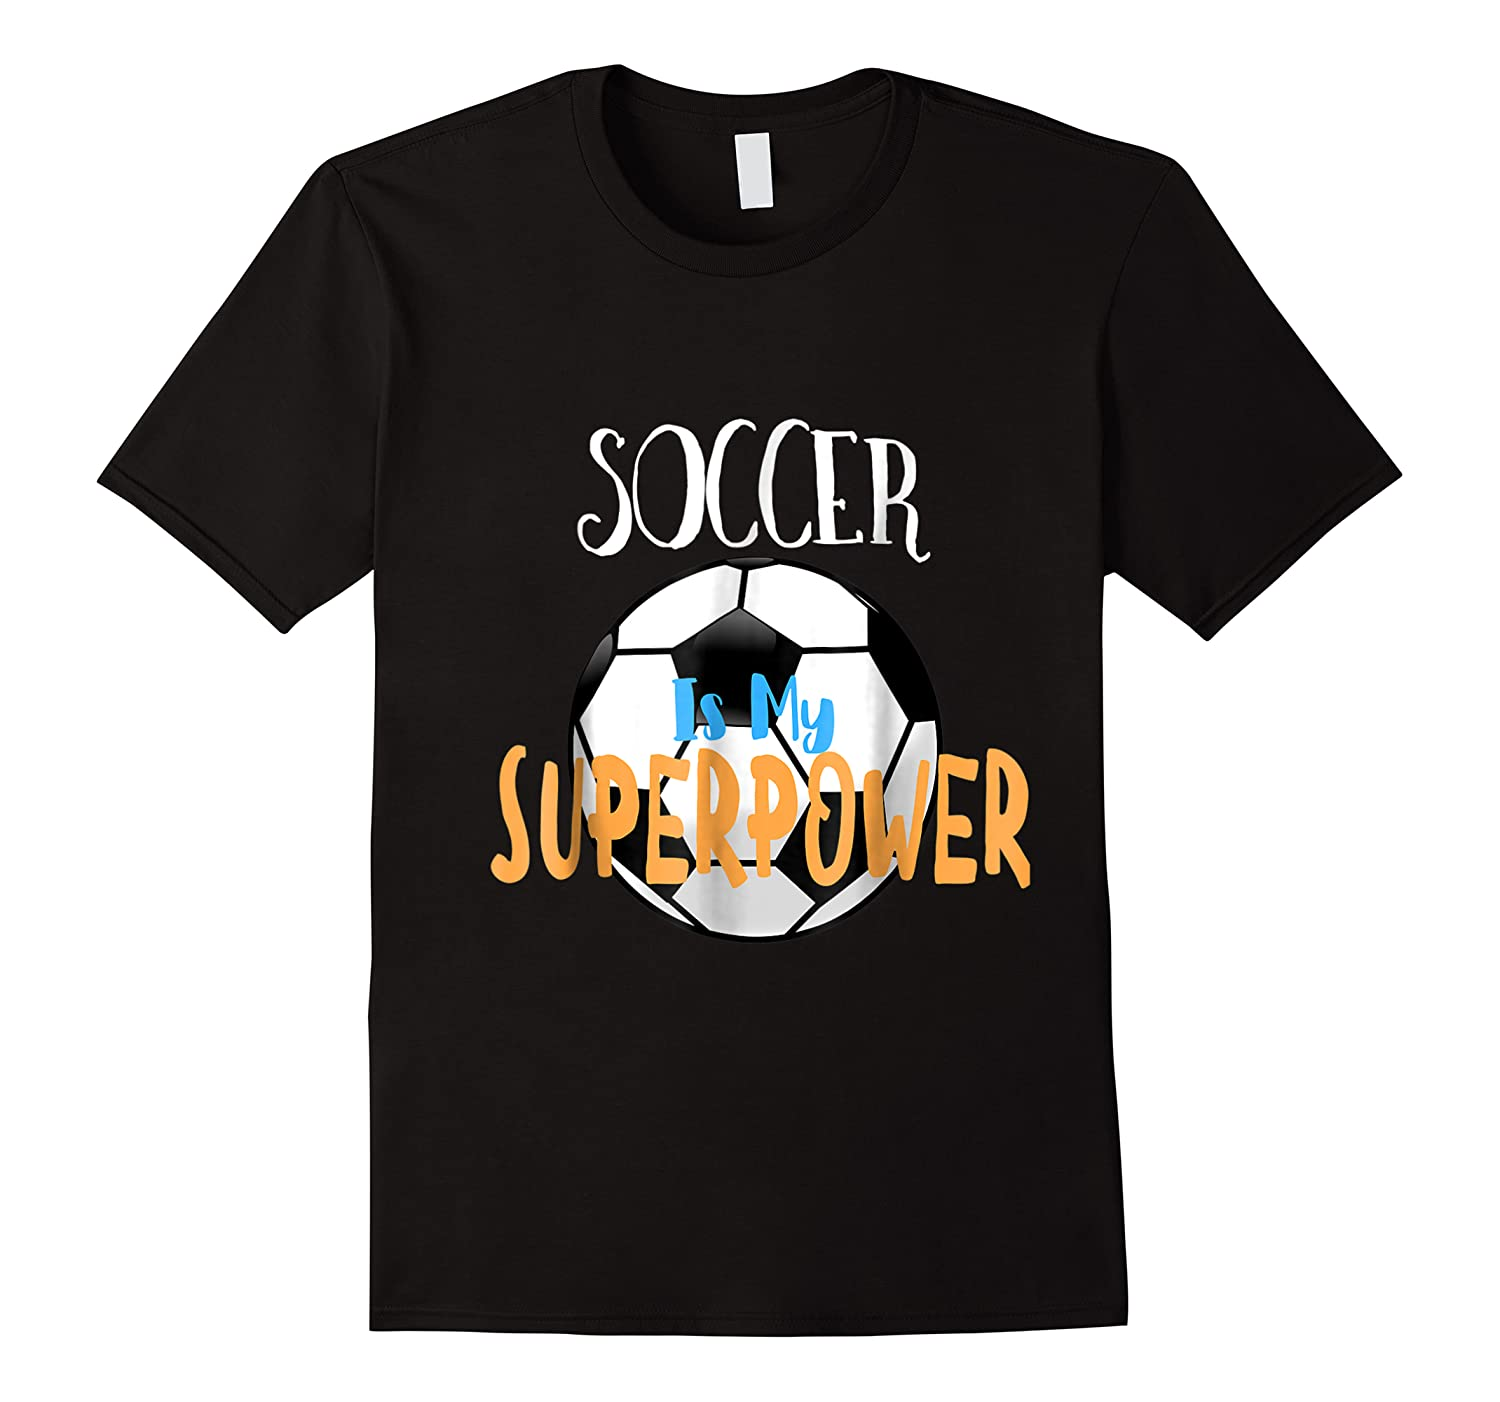 Soccer Is My Superpower T-shirt